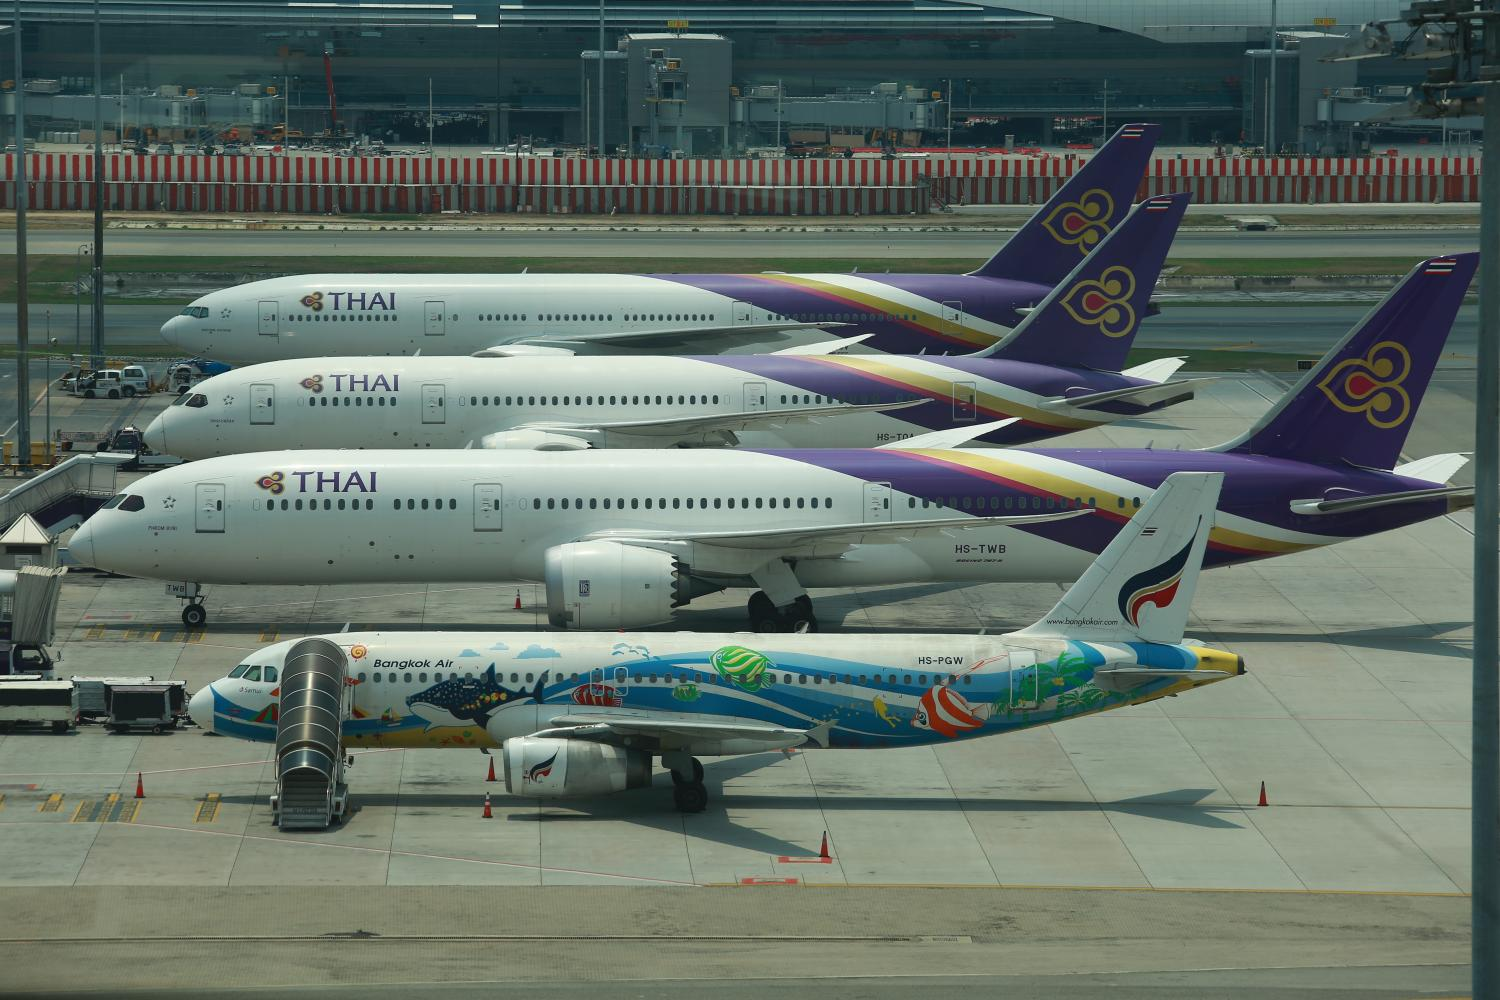 The Civil Aviation Authority of Thailand has okayed airlines' decision to scale back flights or stop flying due to the Covid-19 outbreak. (Photo by Somchai Poomlard)